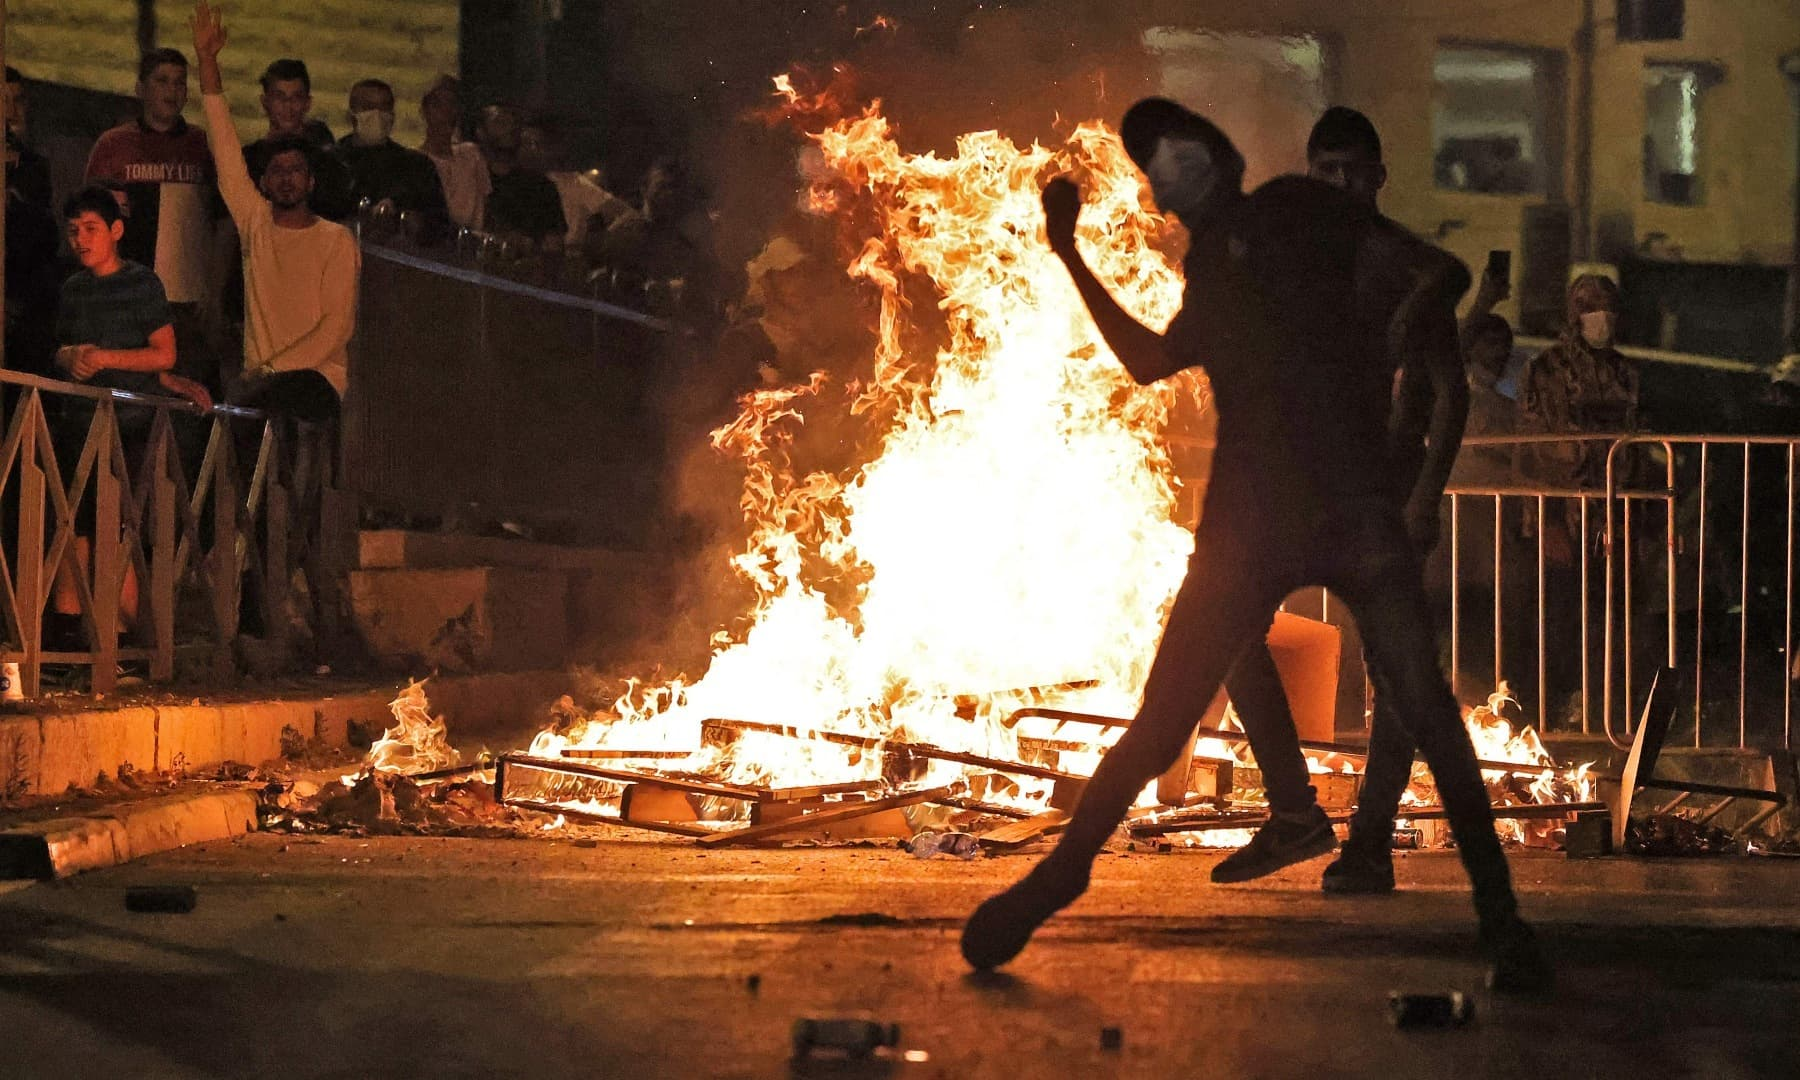 A Palestinian protester hurls stones at Israeli security forces in Jerusalem's Old City on May 8. — AFP